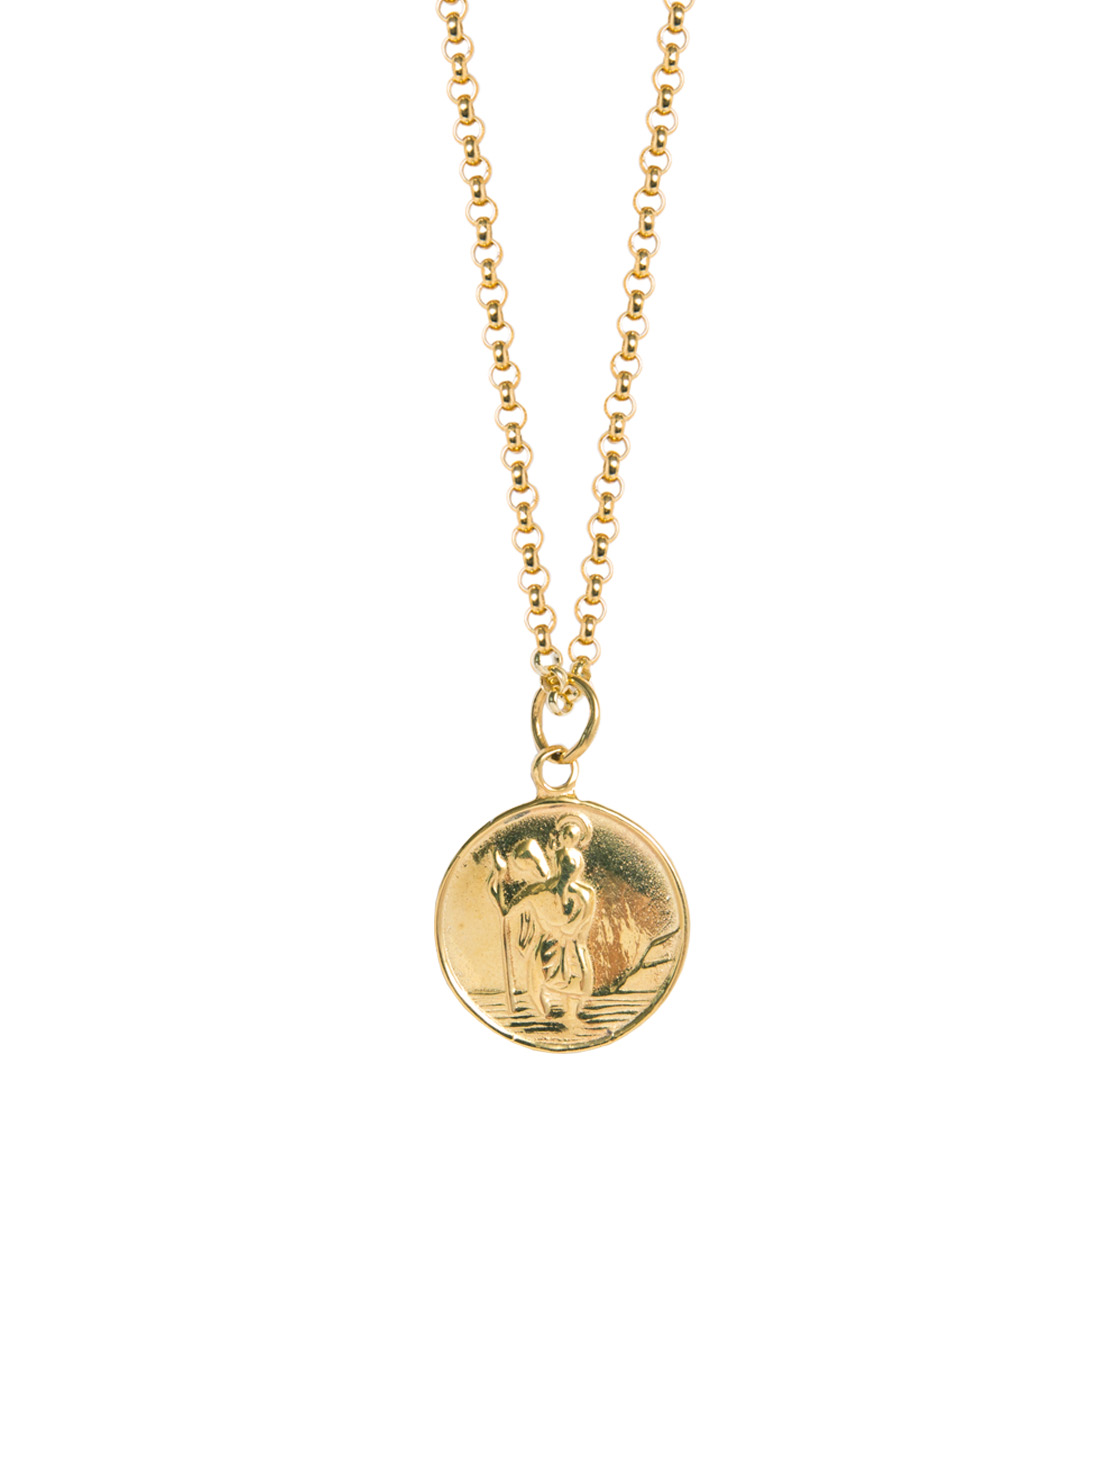 27695c3779d Large Gold St Christopher Necklace - Tilly Sveaas Jewellery